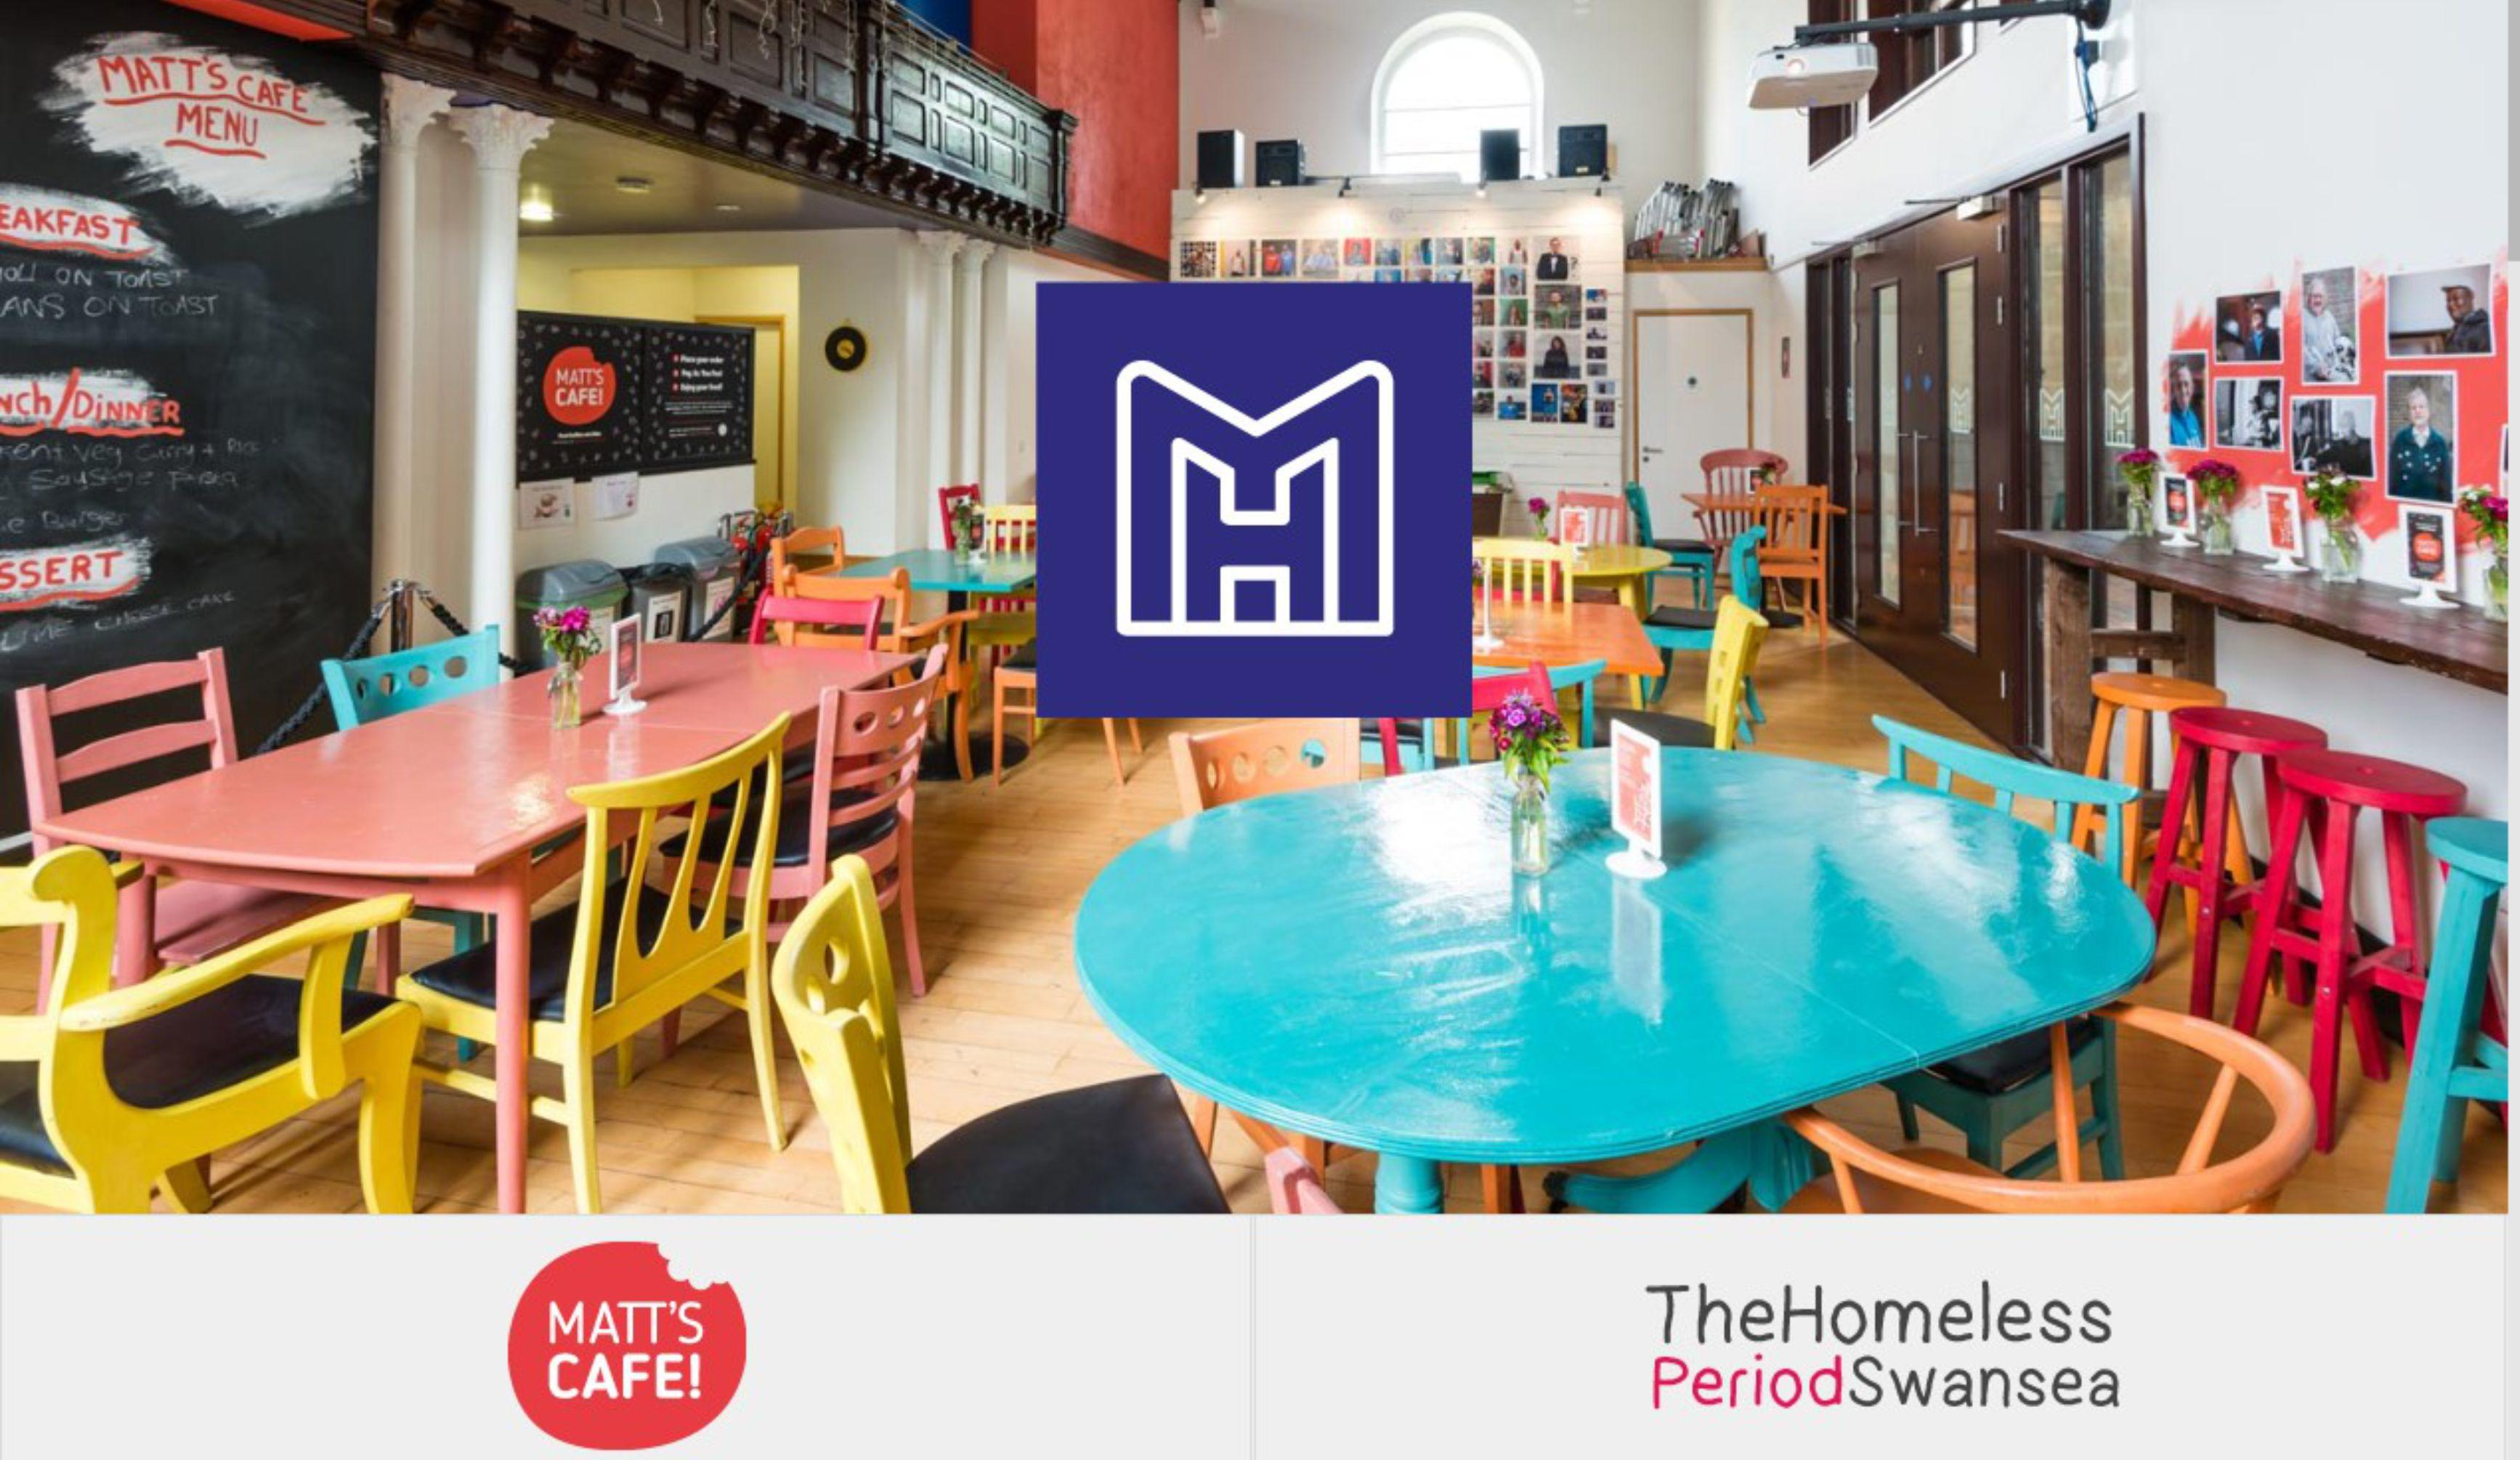 Matts Cafe & Matthews House